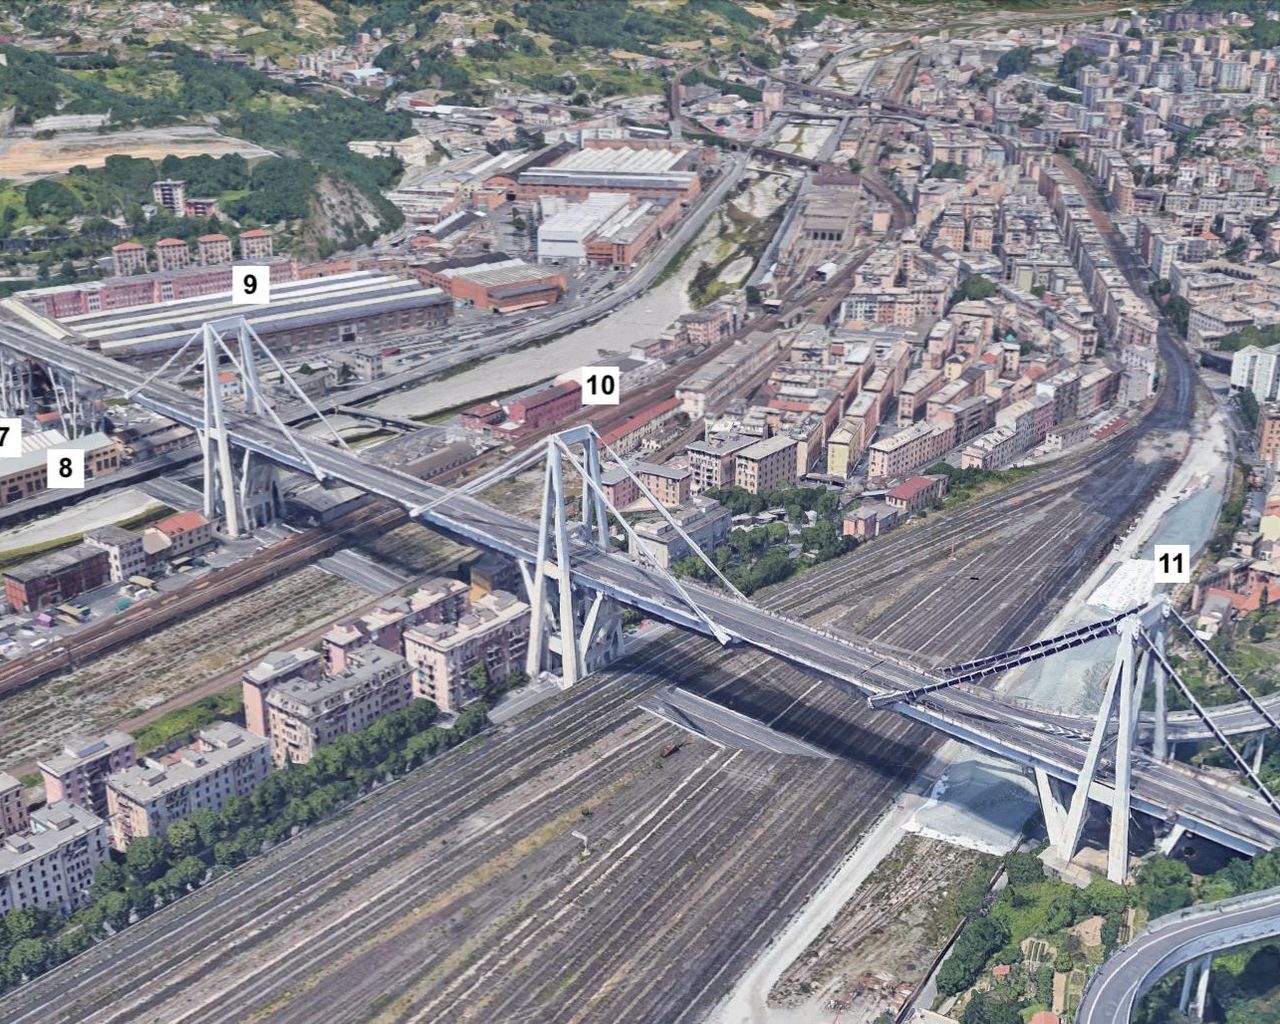 A satellite view of the Morandi Bridge in Genoa, Italy, prior to its August 2018 collapse. The numbers identify key bridge components. Numbers 4 through 8 correspond to the bridge's V-shaped piers (from West to East). Numbers 9 through 11 correspond to three independent balance systems on the bridge. In the annotated version, the black arrows identify areas of change based on data from the Cosmo-SkyMed satellite constellation. Image Credit: NASA/JPL-Caltech/Google